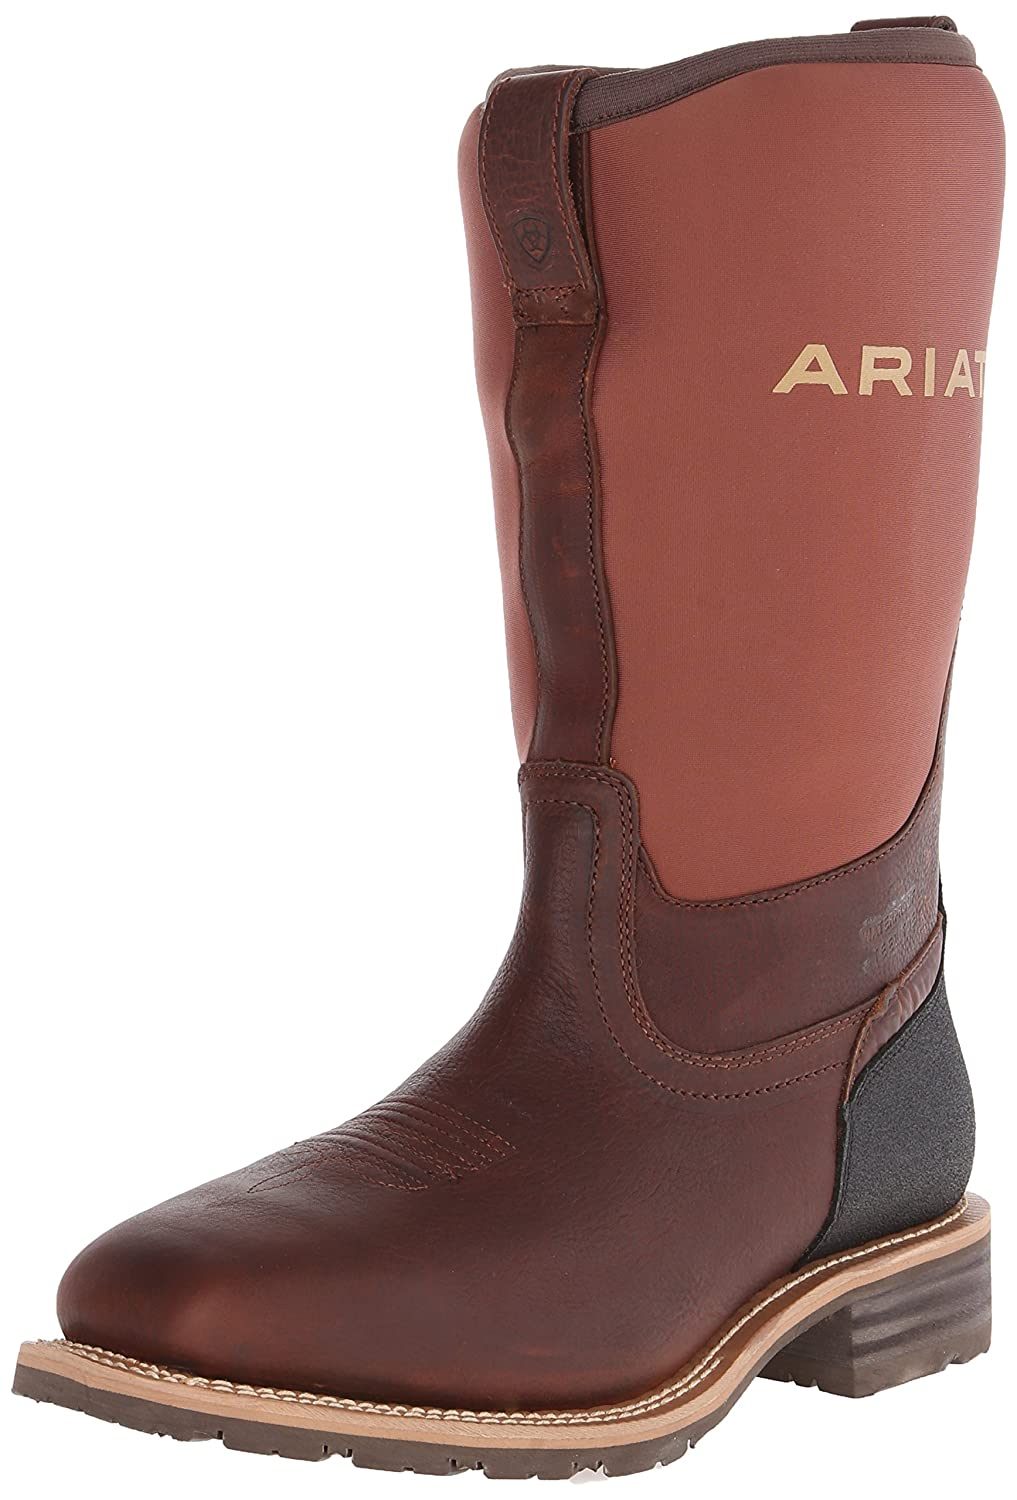 Ariat Men's Hybrid All Weather Steel Toe Western Cowboy Boot